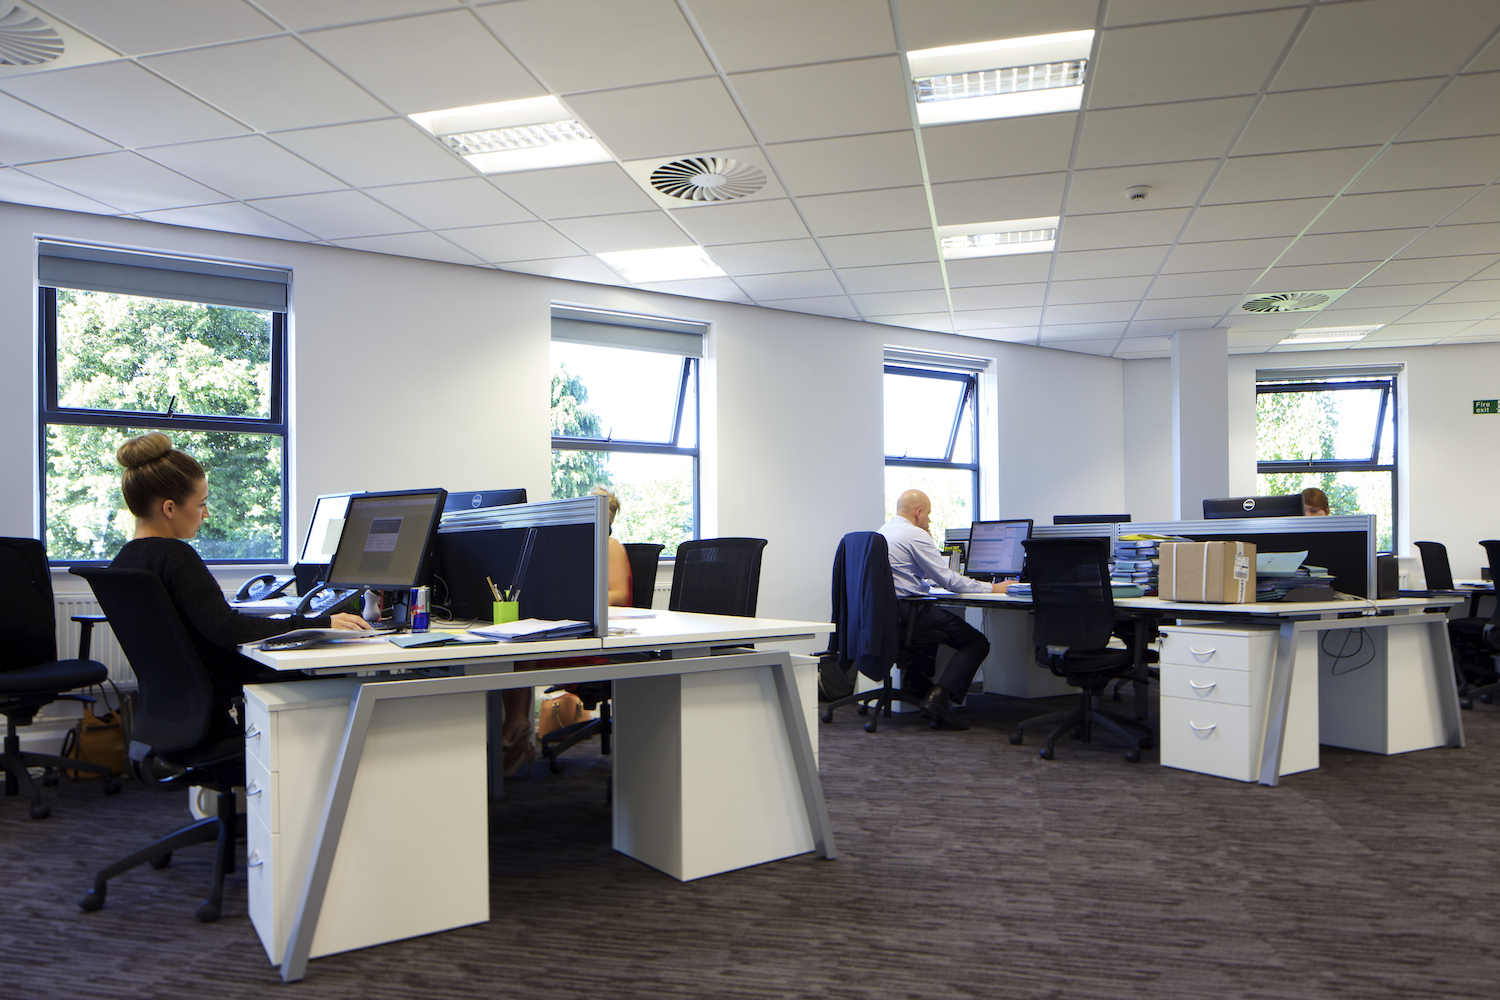 recycled office furniture manchester randa office rh randaoffice co uk recycled office furniture manchester recycled office furniture birmingham uk